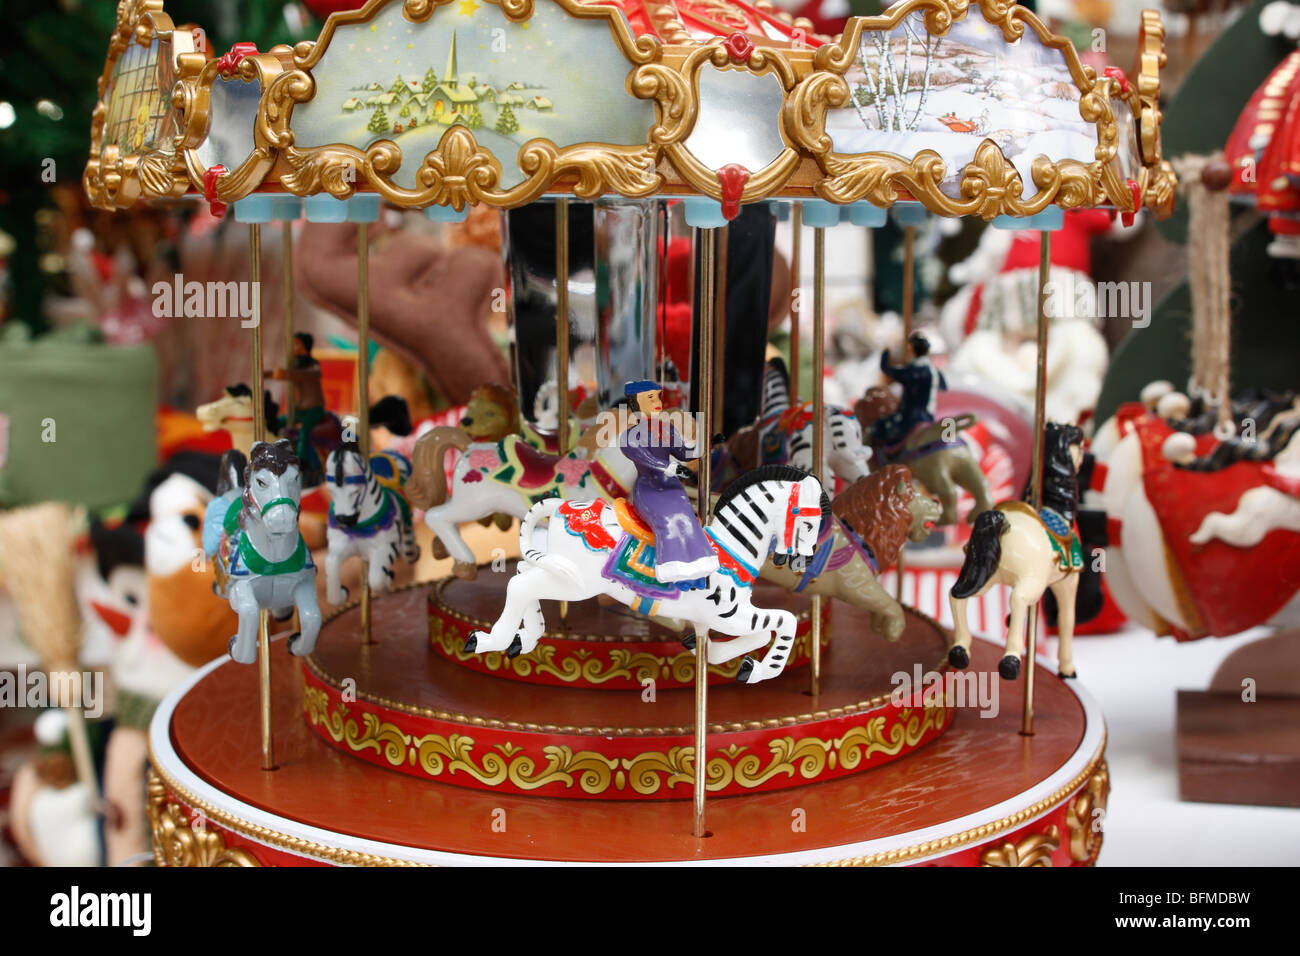 christmas carousel seasonal decoration stock image - Christmas Carousel Decoration